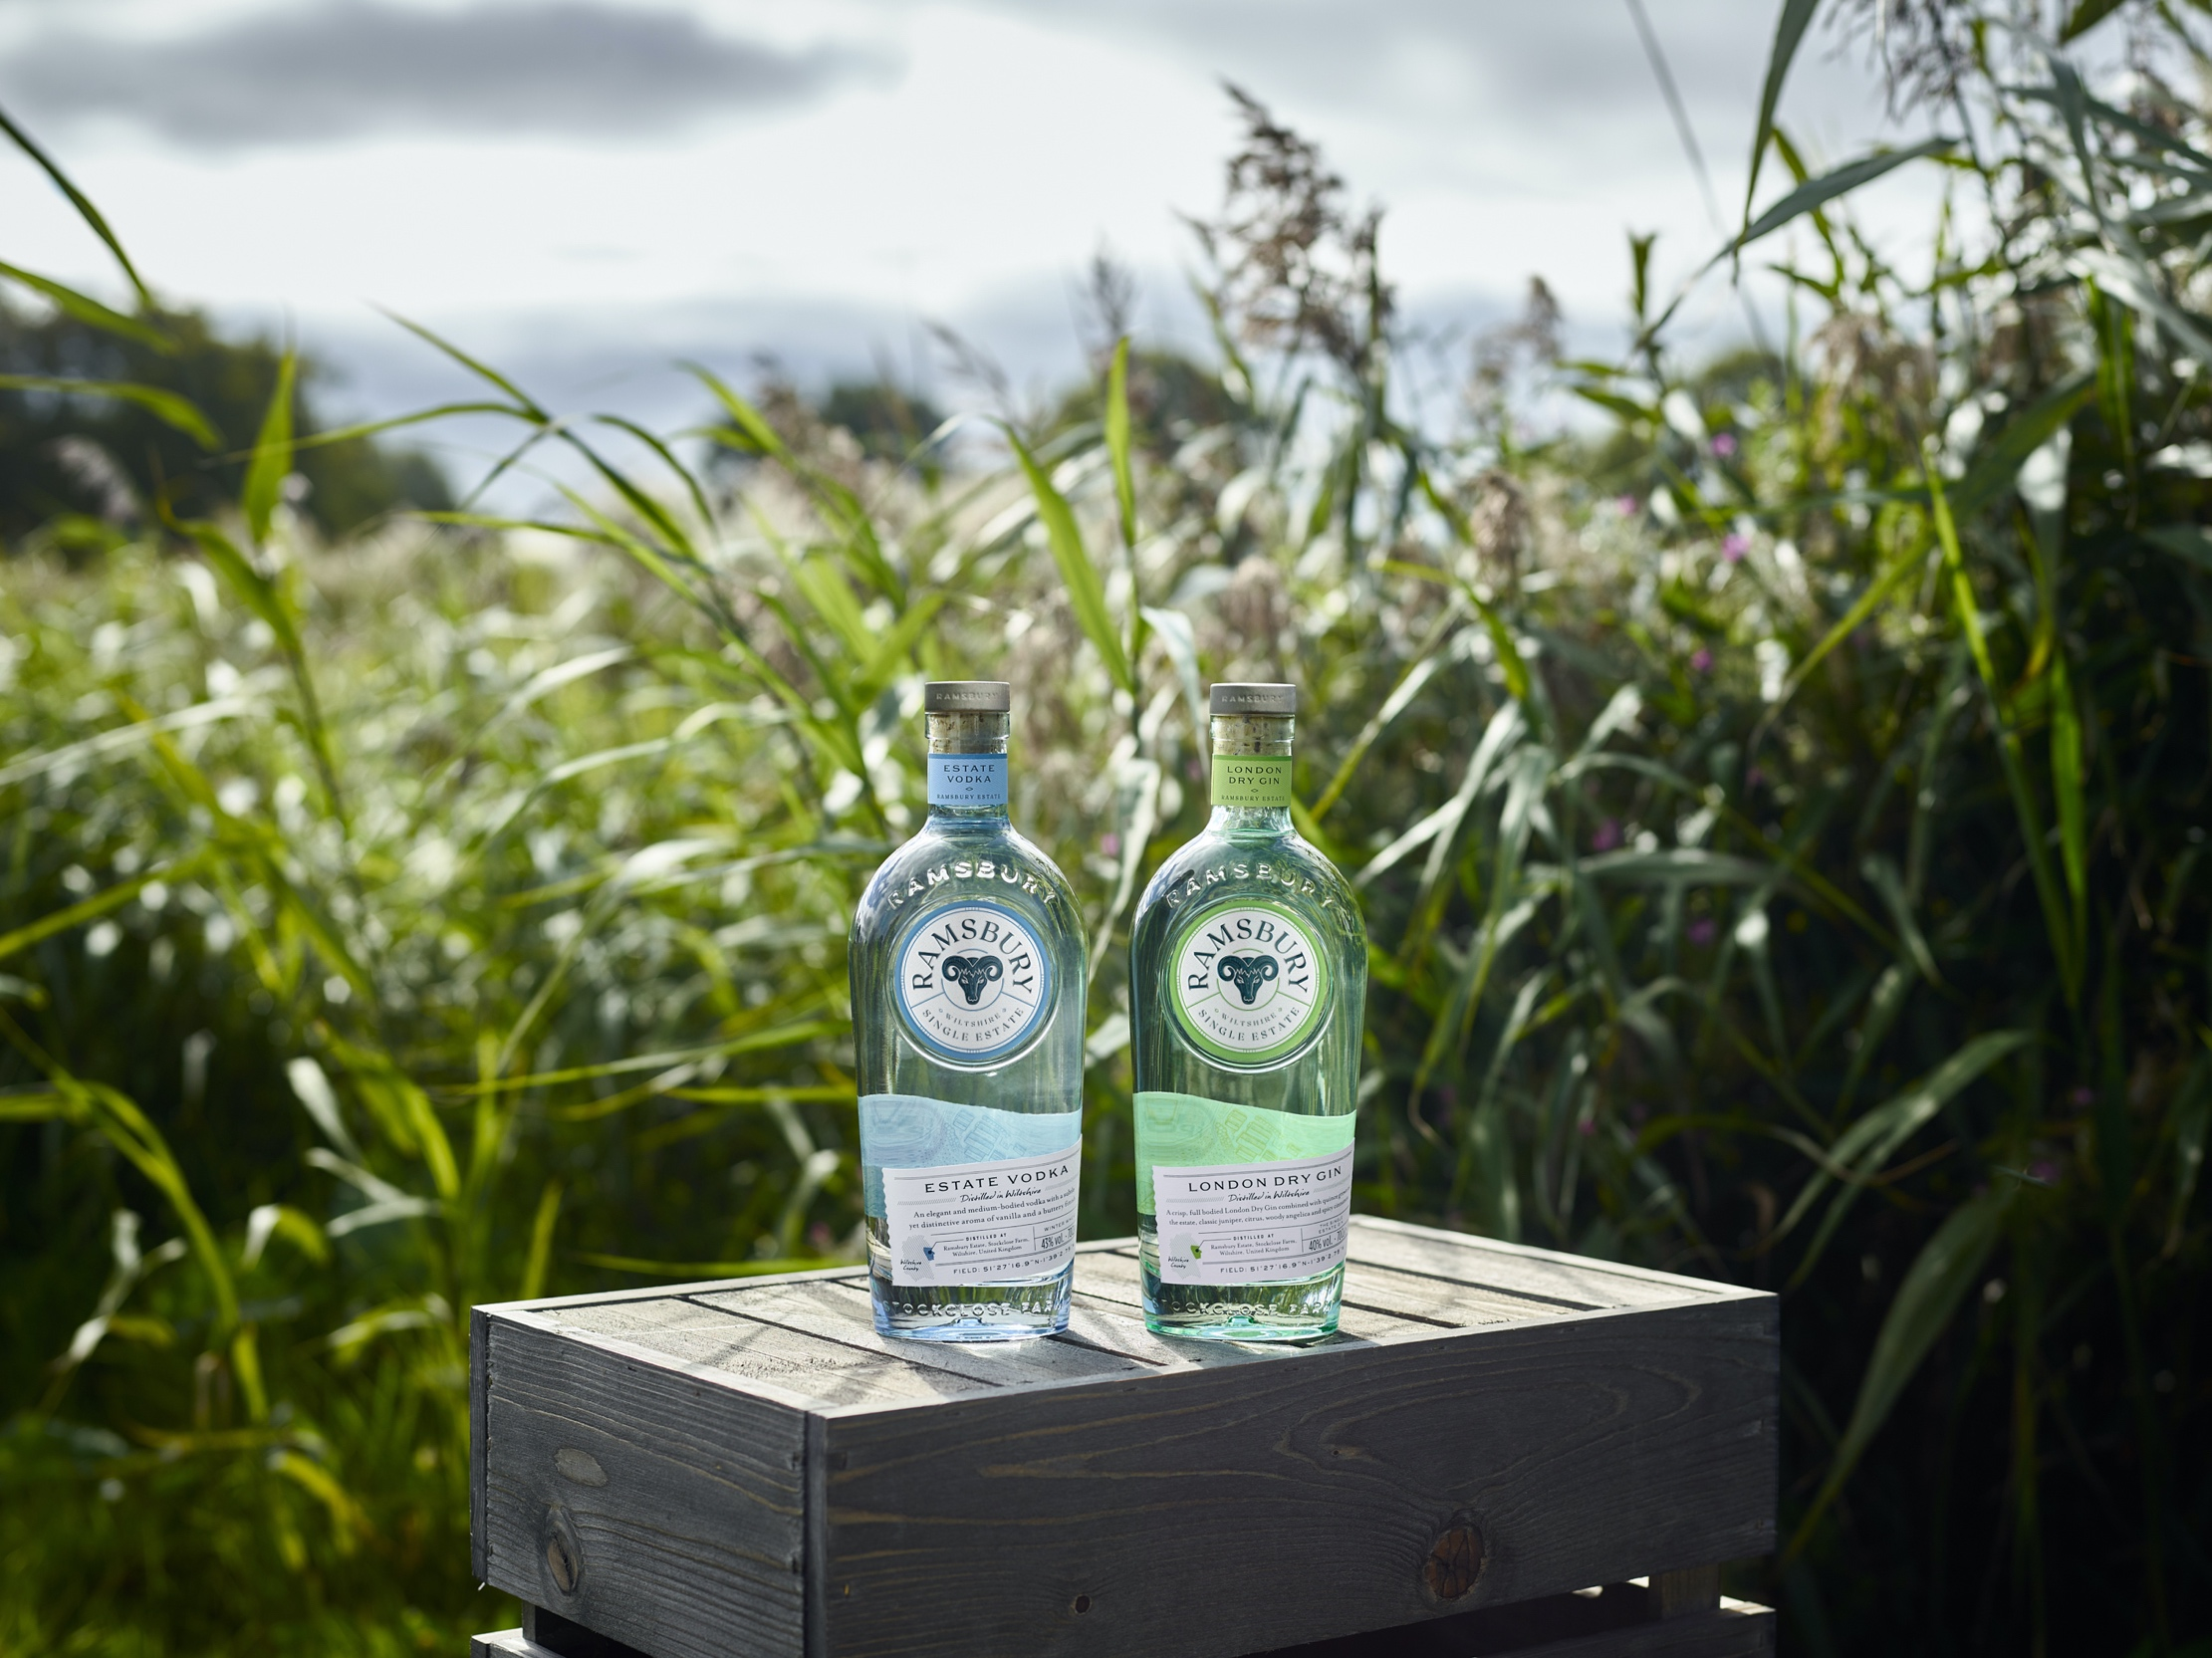 Ramsbury Single Estate Spirits new bottles